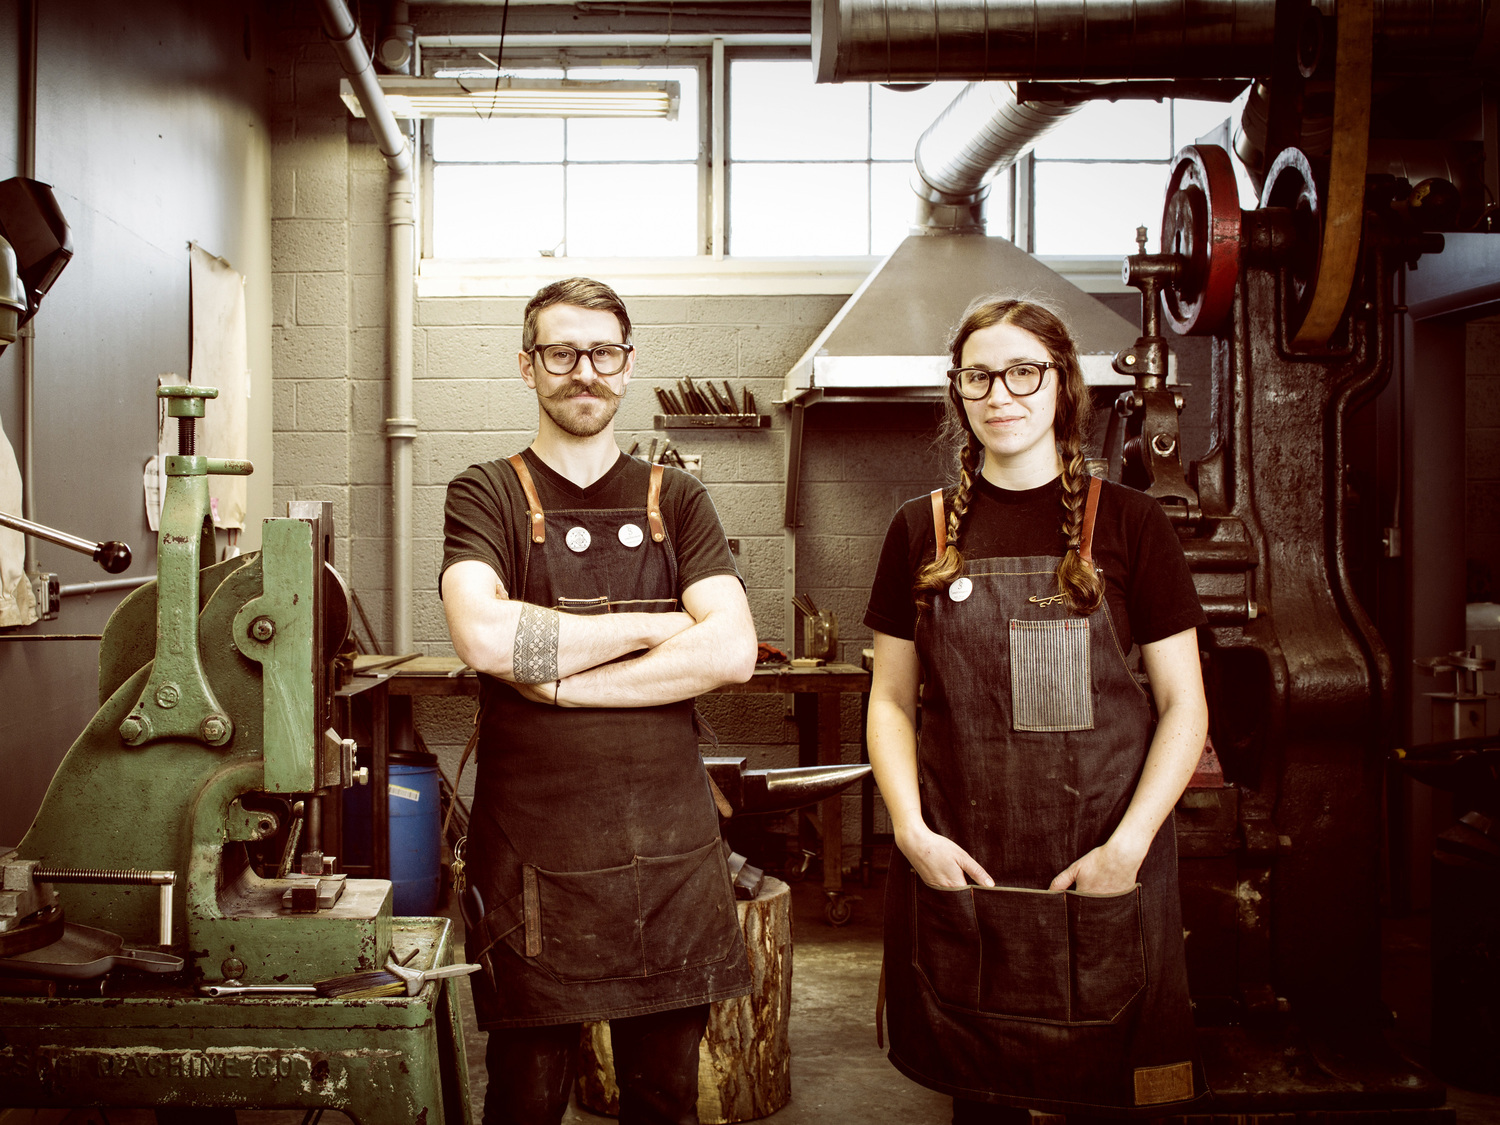 - The owners of Smith Shop, Amy Weiks and Gabriel Craig are the designers of the work, and a crew of apprentices help them complete each object. Custom work is carefully brought from customer input to design concept, to fabrication and installation.